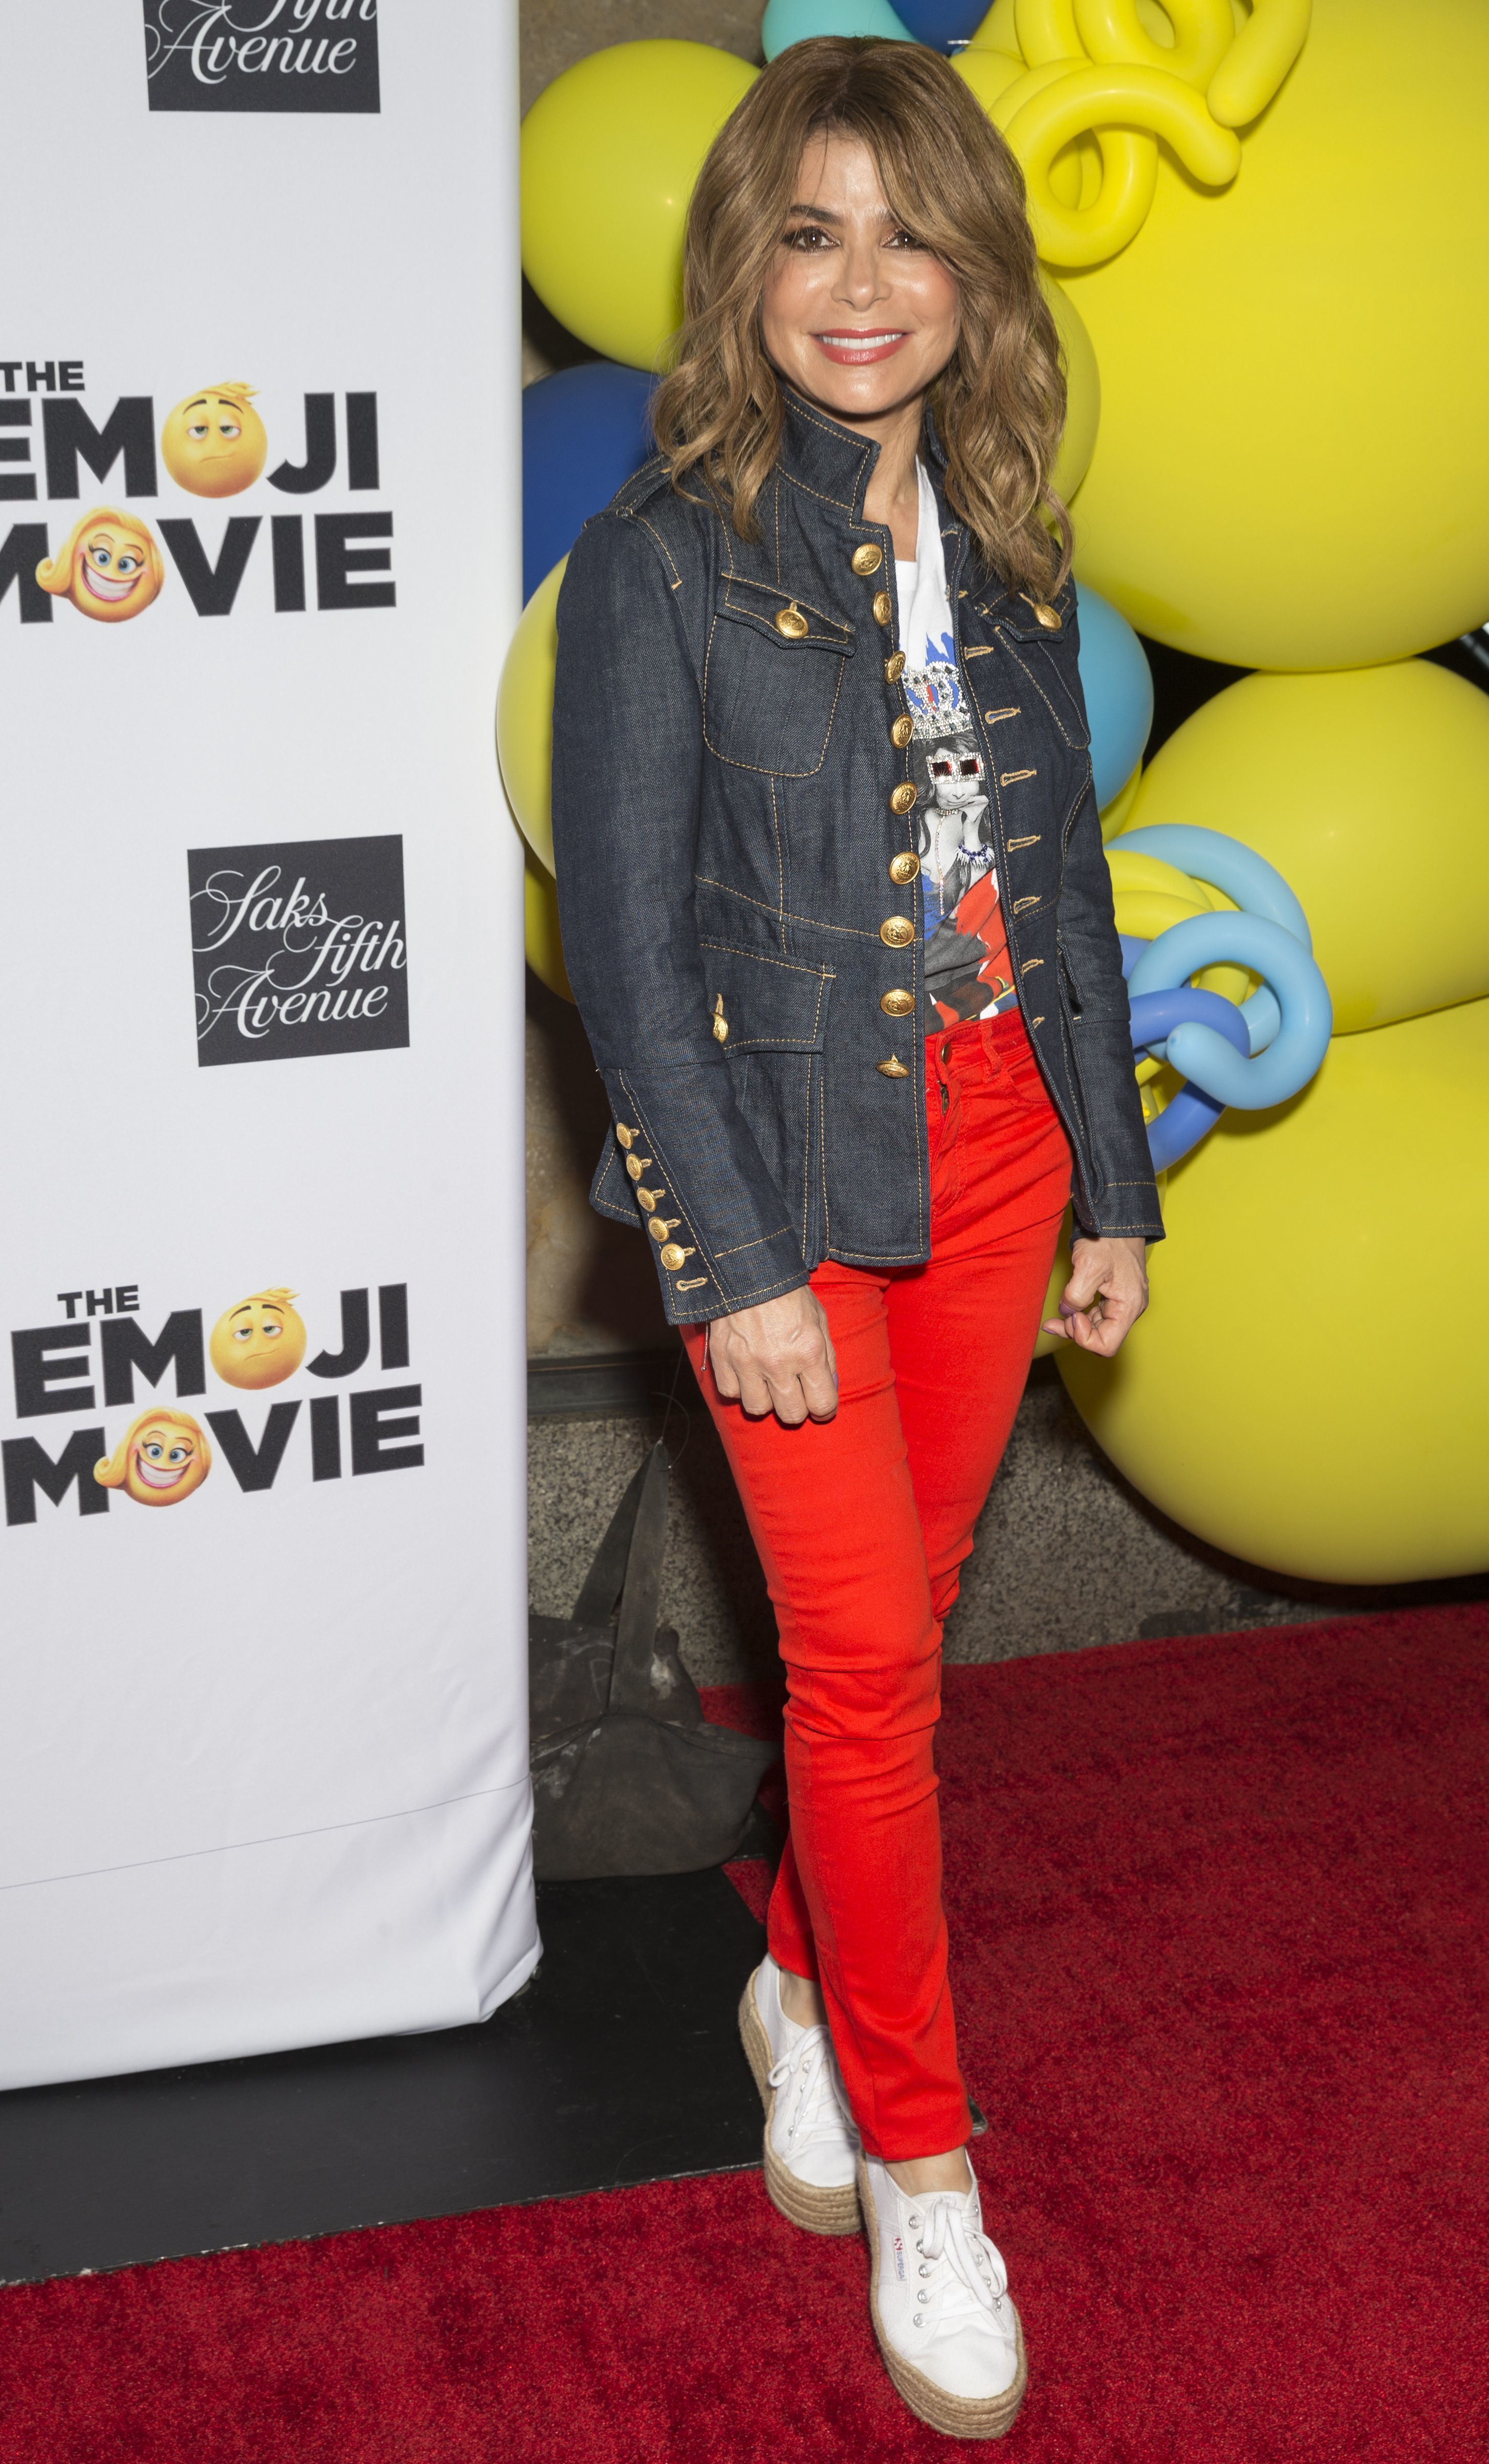 """Paula Abdul attends """"The Emoji Movie"""" film premiere at Saks Fifth Avenue in New York City on July 17, 2017."""